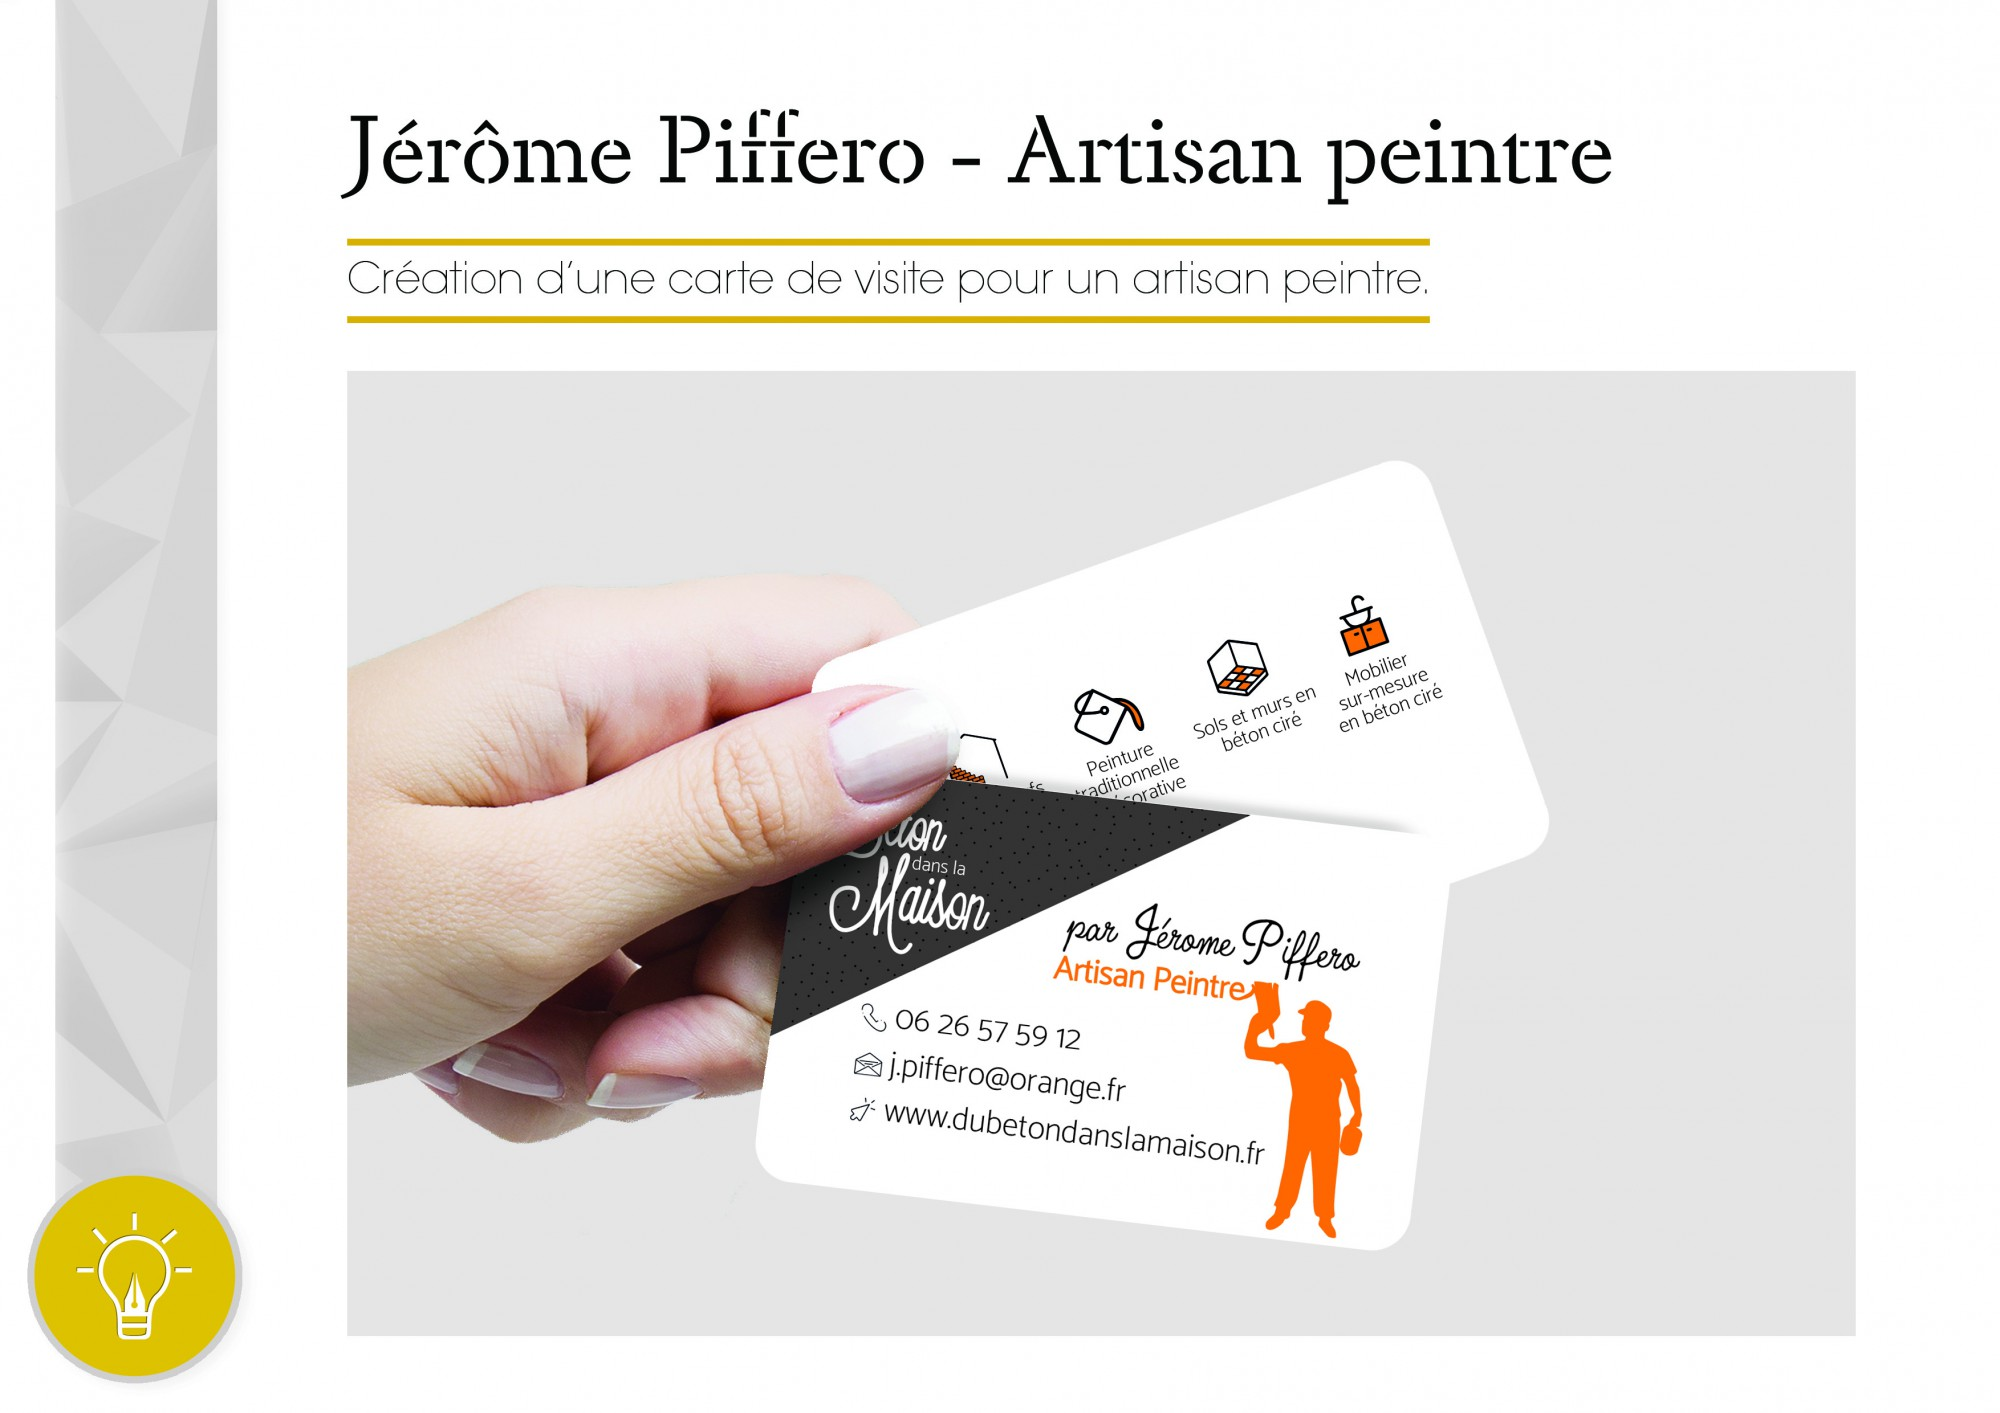 jerome-piffero-creationl